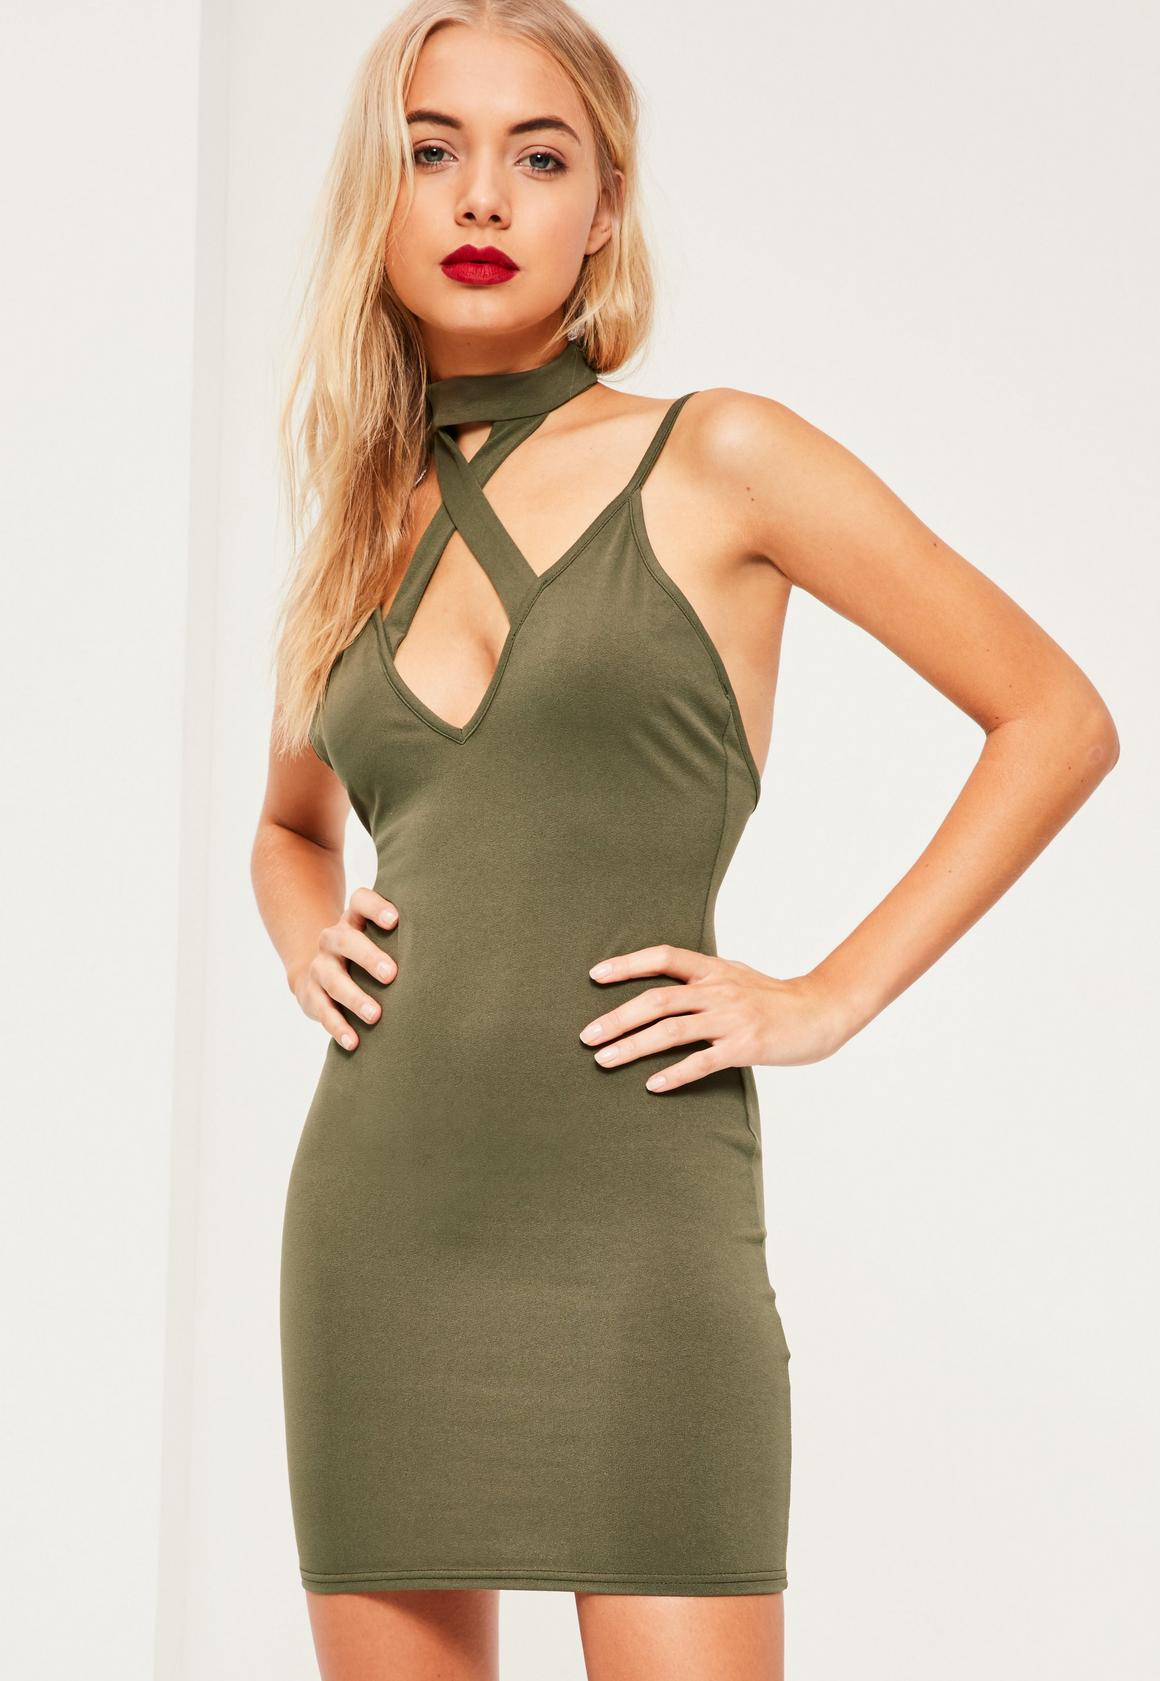 Khaki Cross Front Choker Strappy Bodycon Dress | Missguided